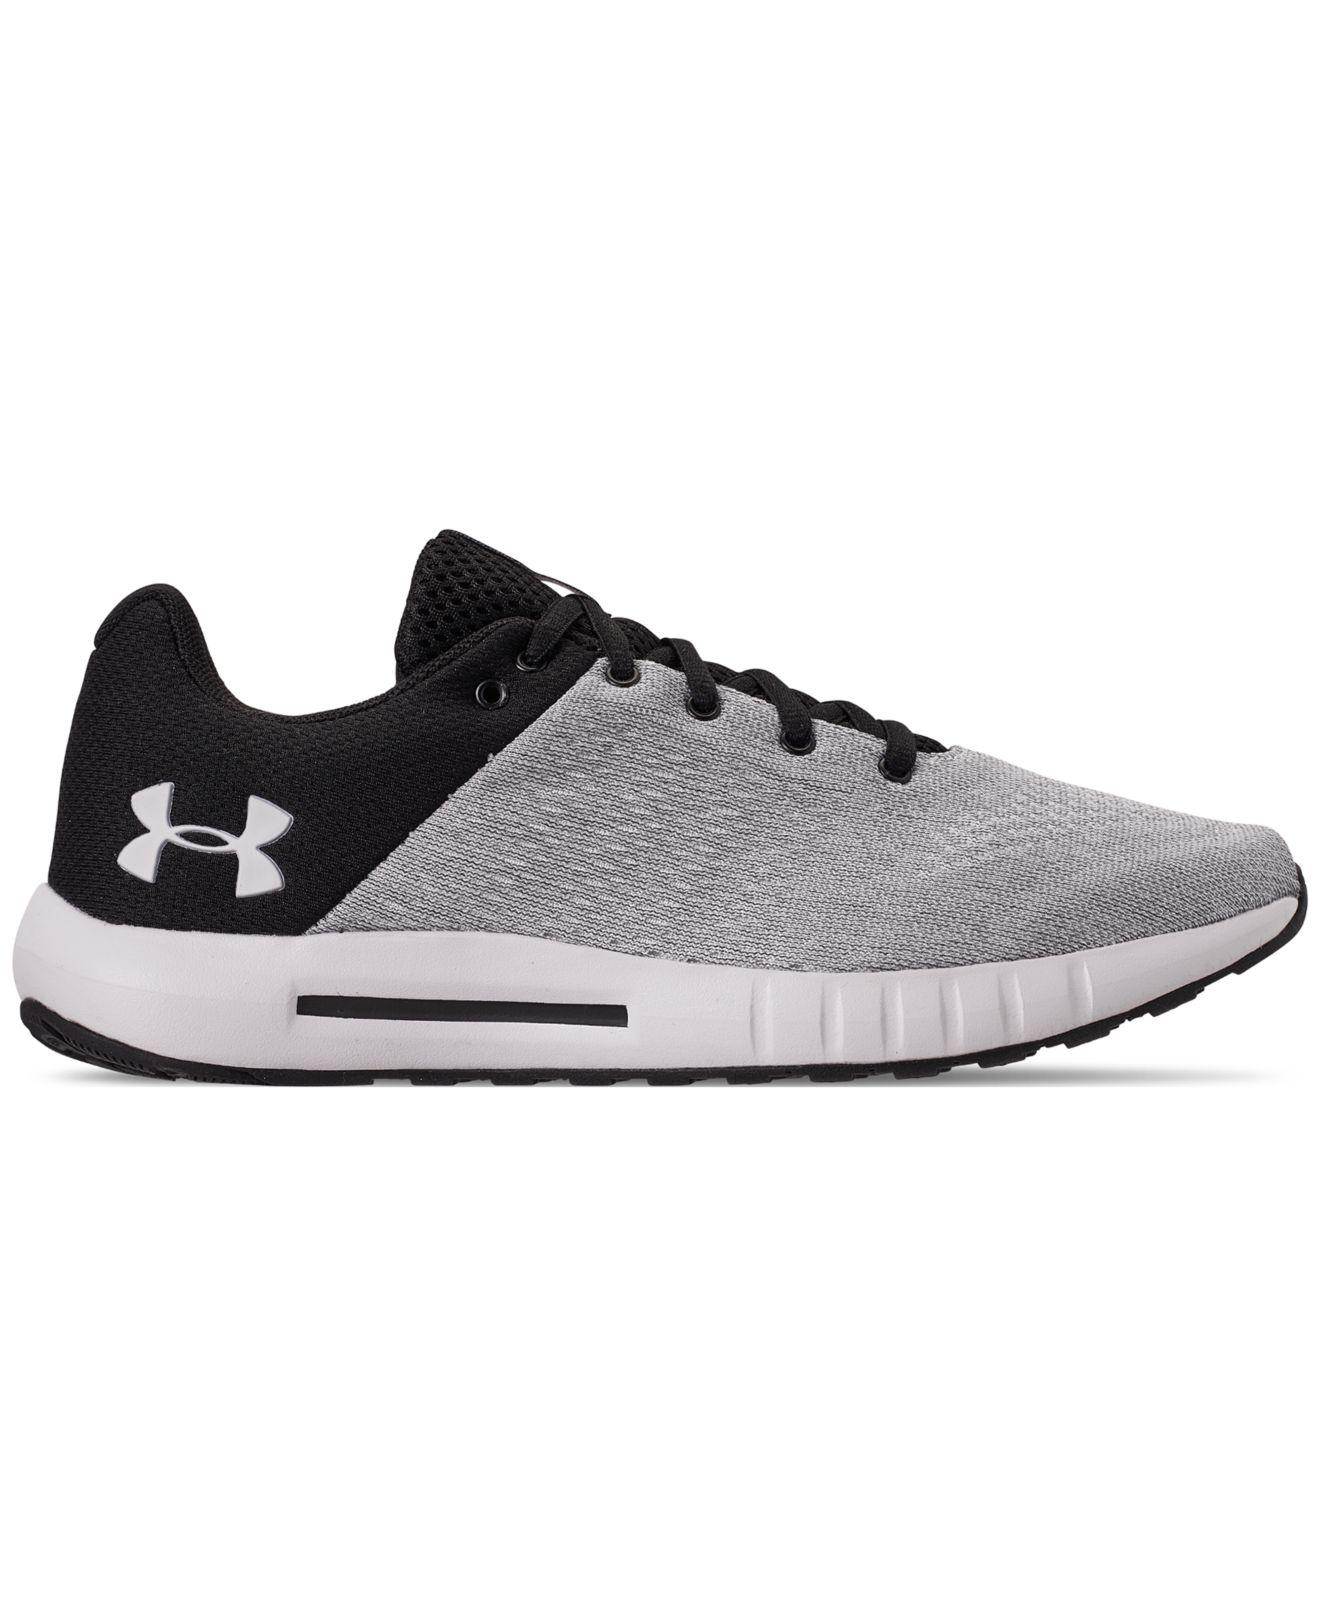 brand new 34024 5c151 Lyst - Under Armour Micro G Pursuit Athletic Sneakers From Finish Line in  White